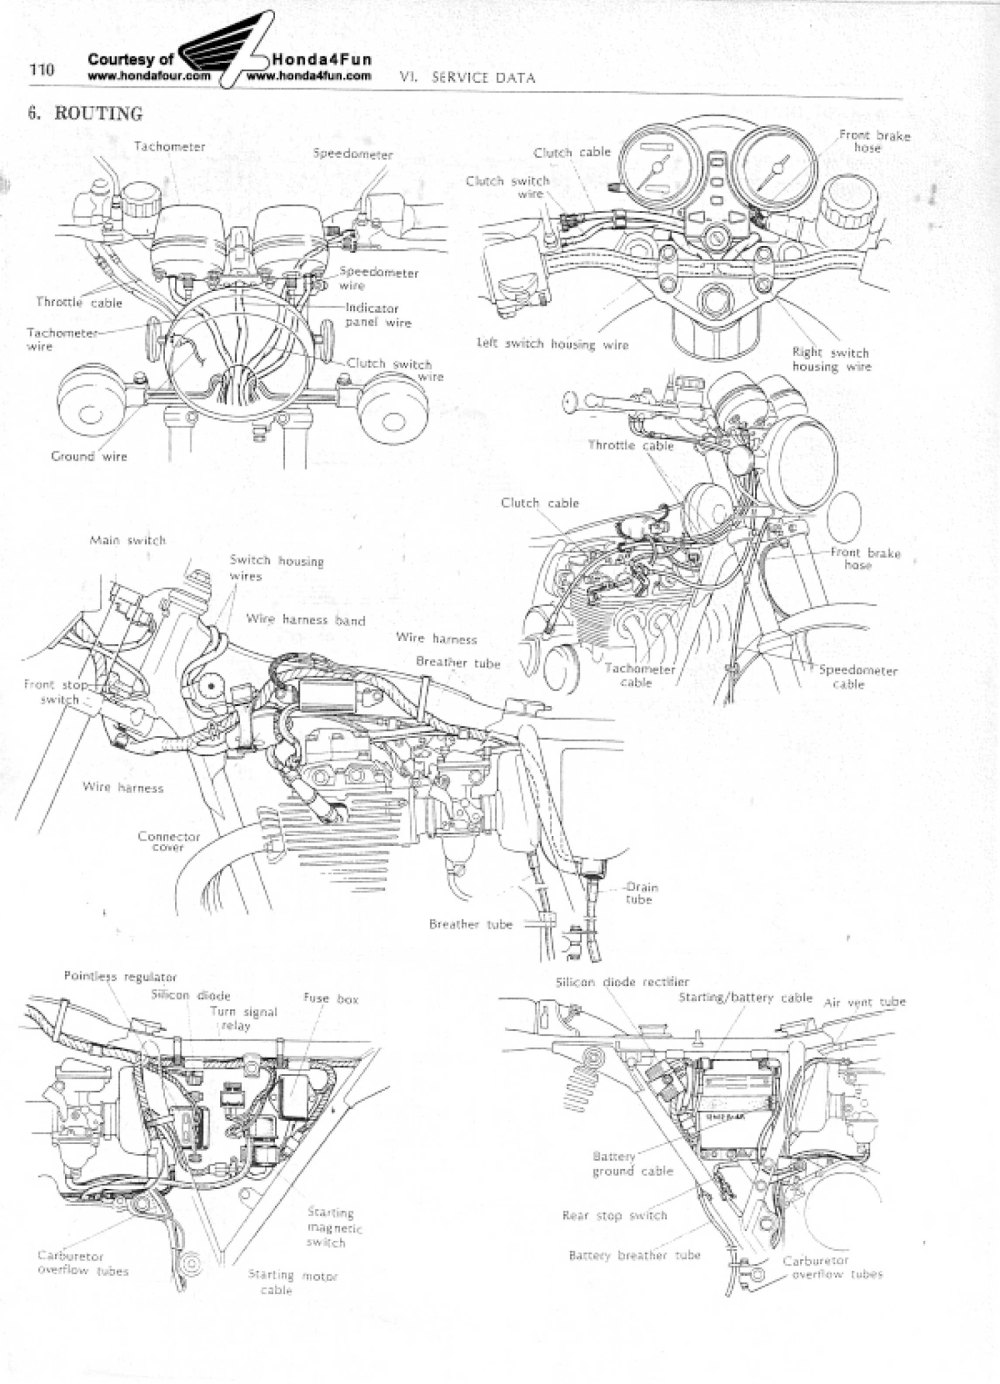 medium resolution of wiring diagrams cb750 k8 jpg click on the image for a bigger version as the forum automatically scales it down